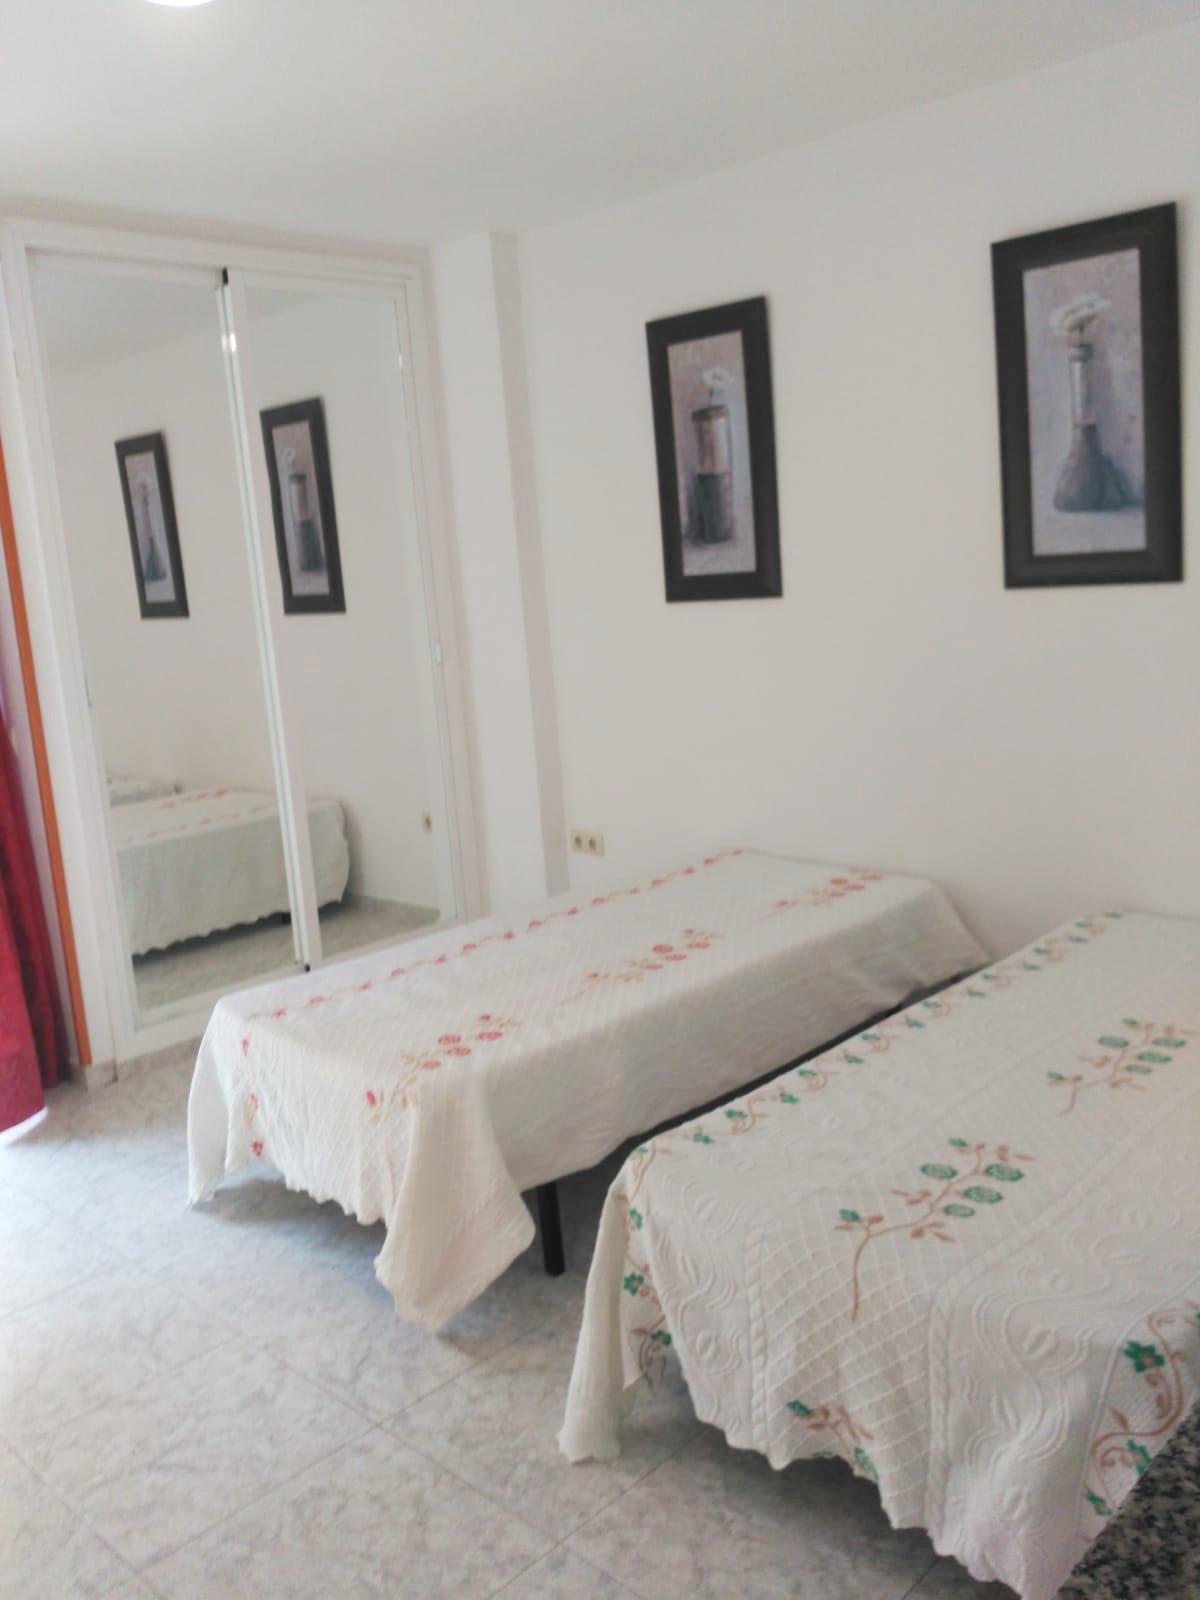 Studio completely renovated and furnished. It consists of living-dining room-bedroom with access to ,Spain